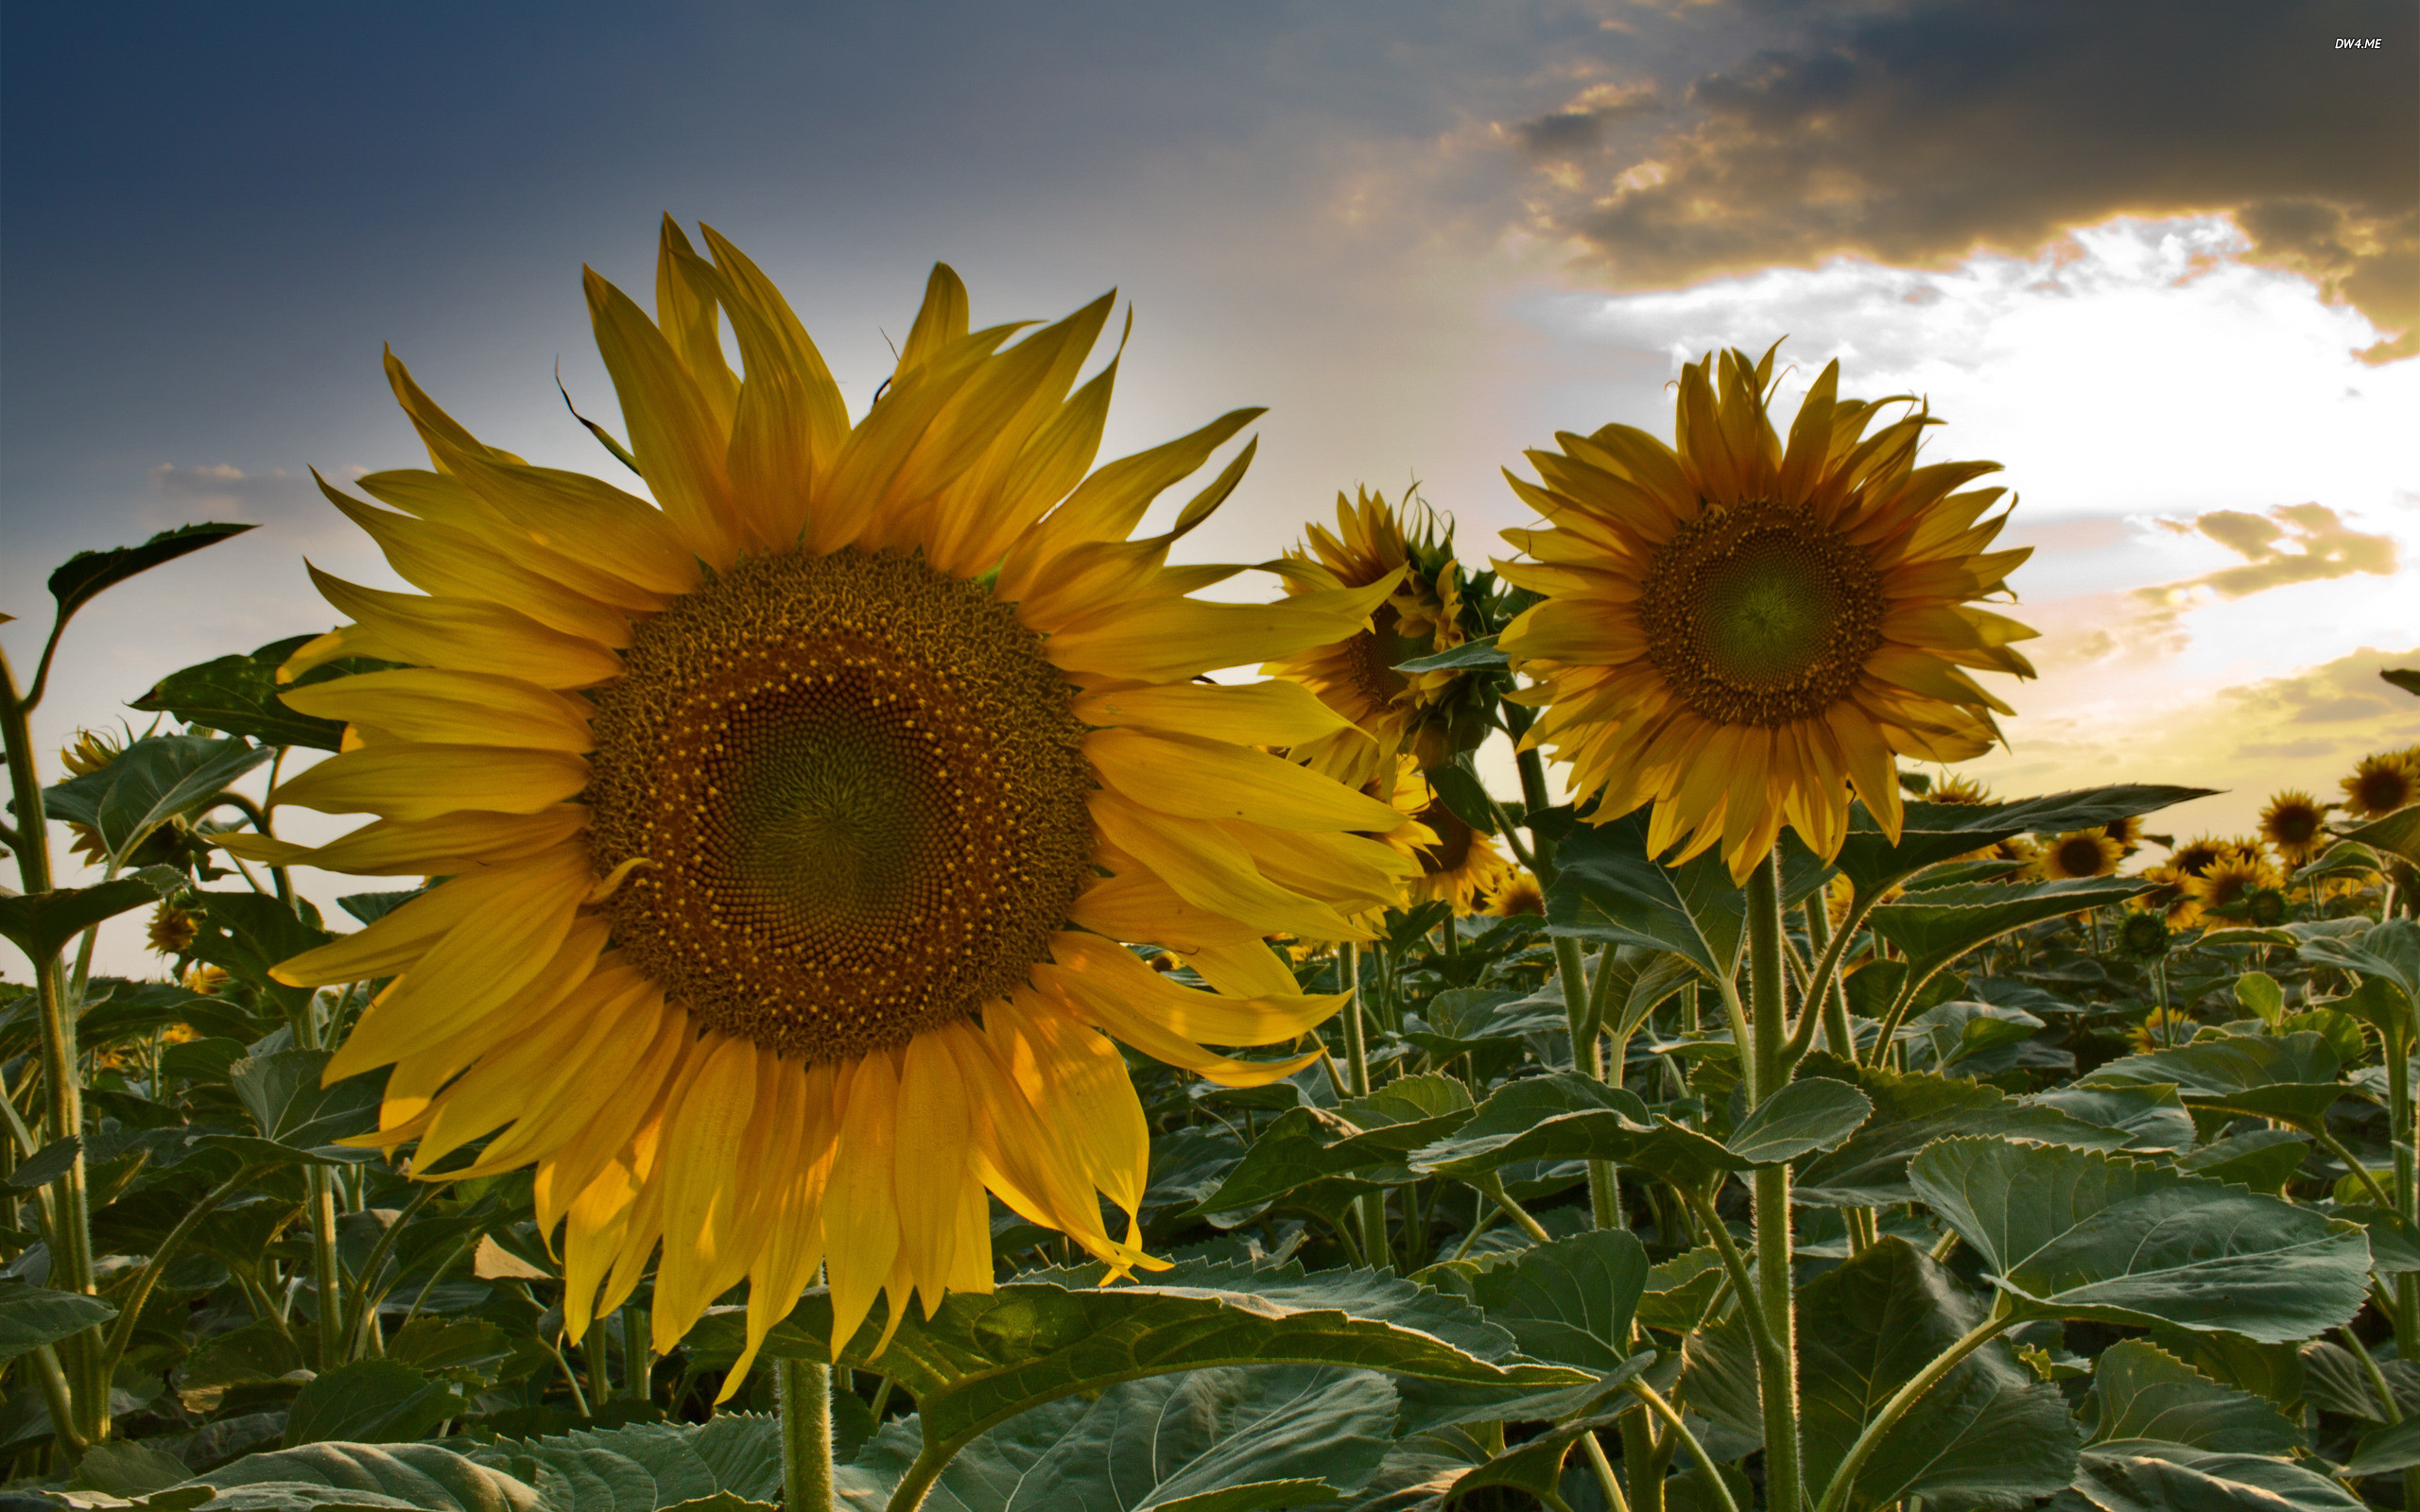 Sunflower wallpaper ·① Download free stunning HD backgrounds for